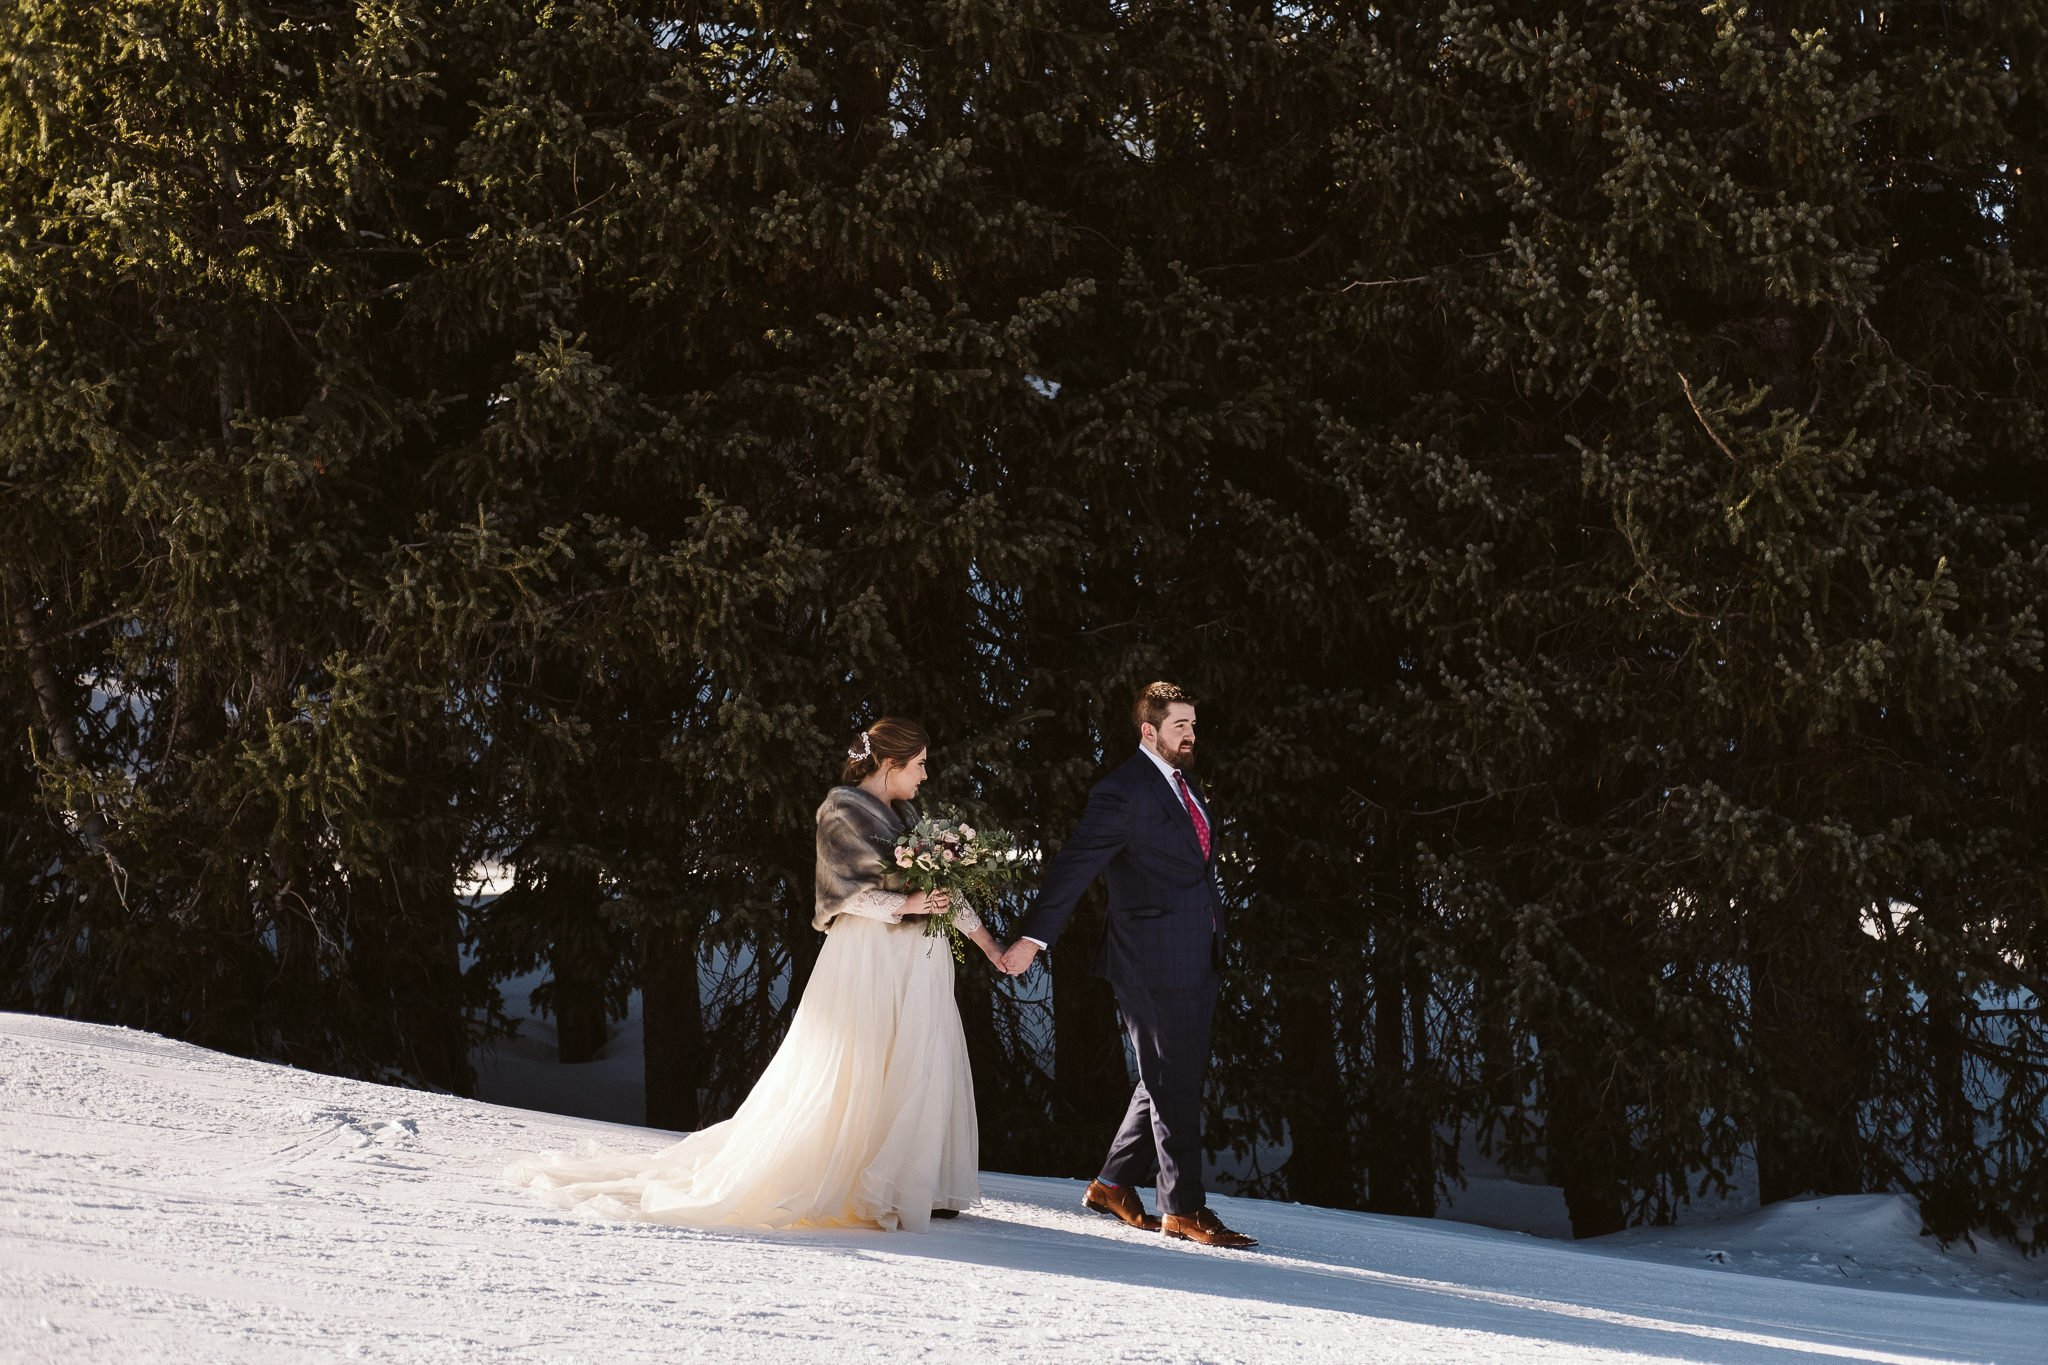 Colorado winter elopement in snowy forest.